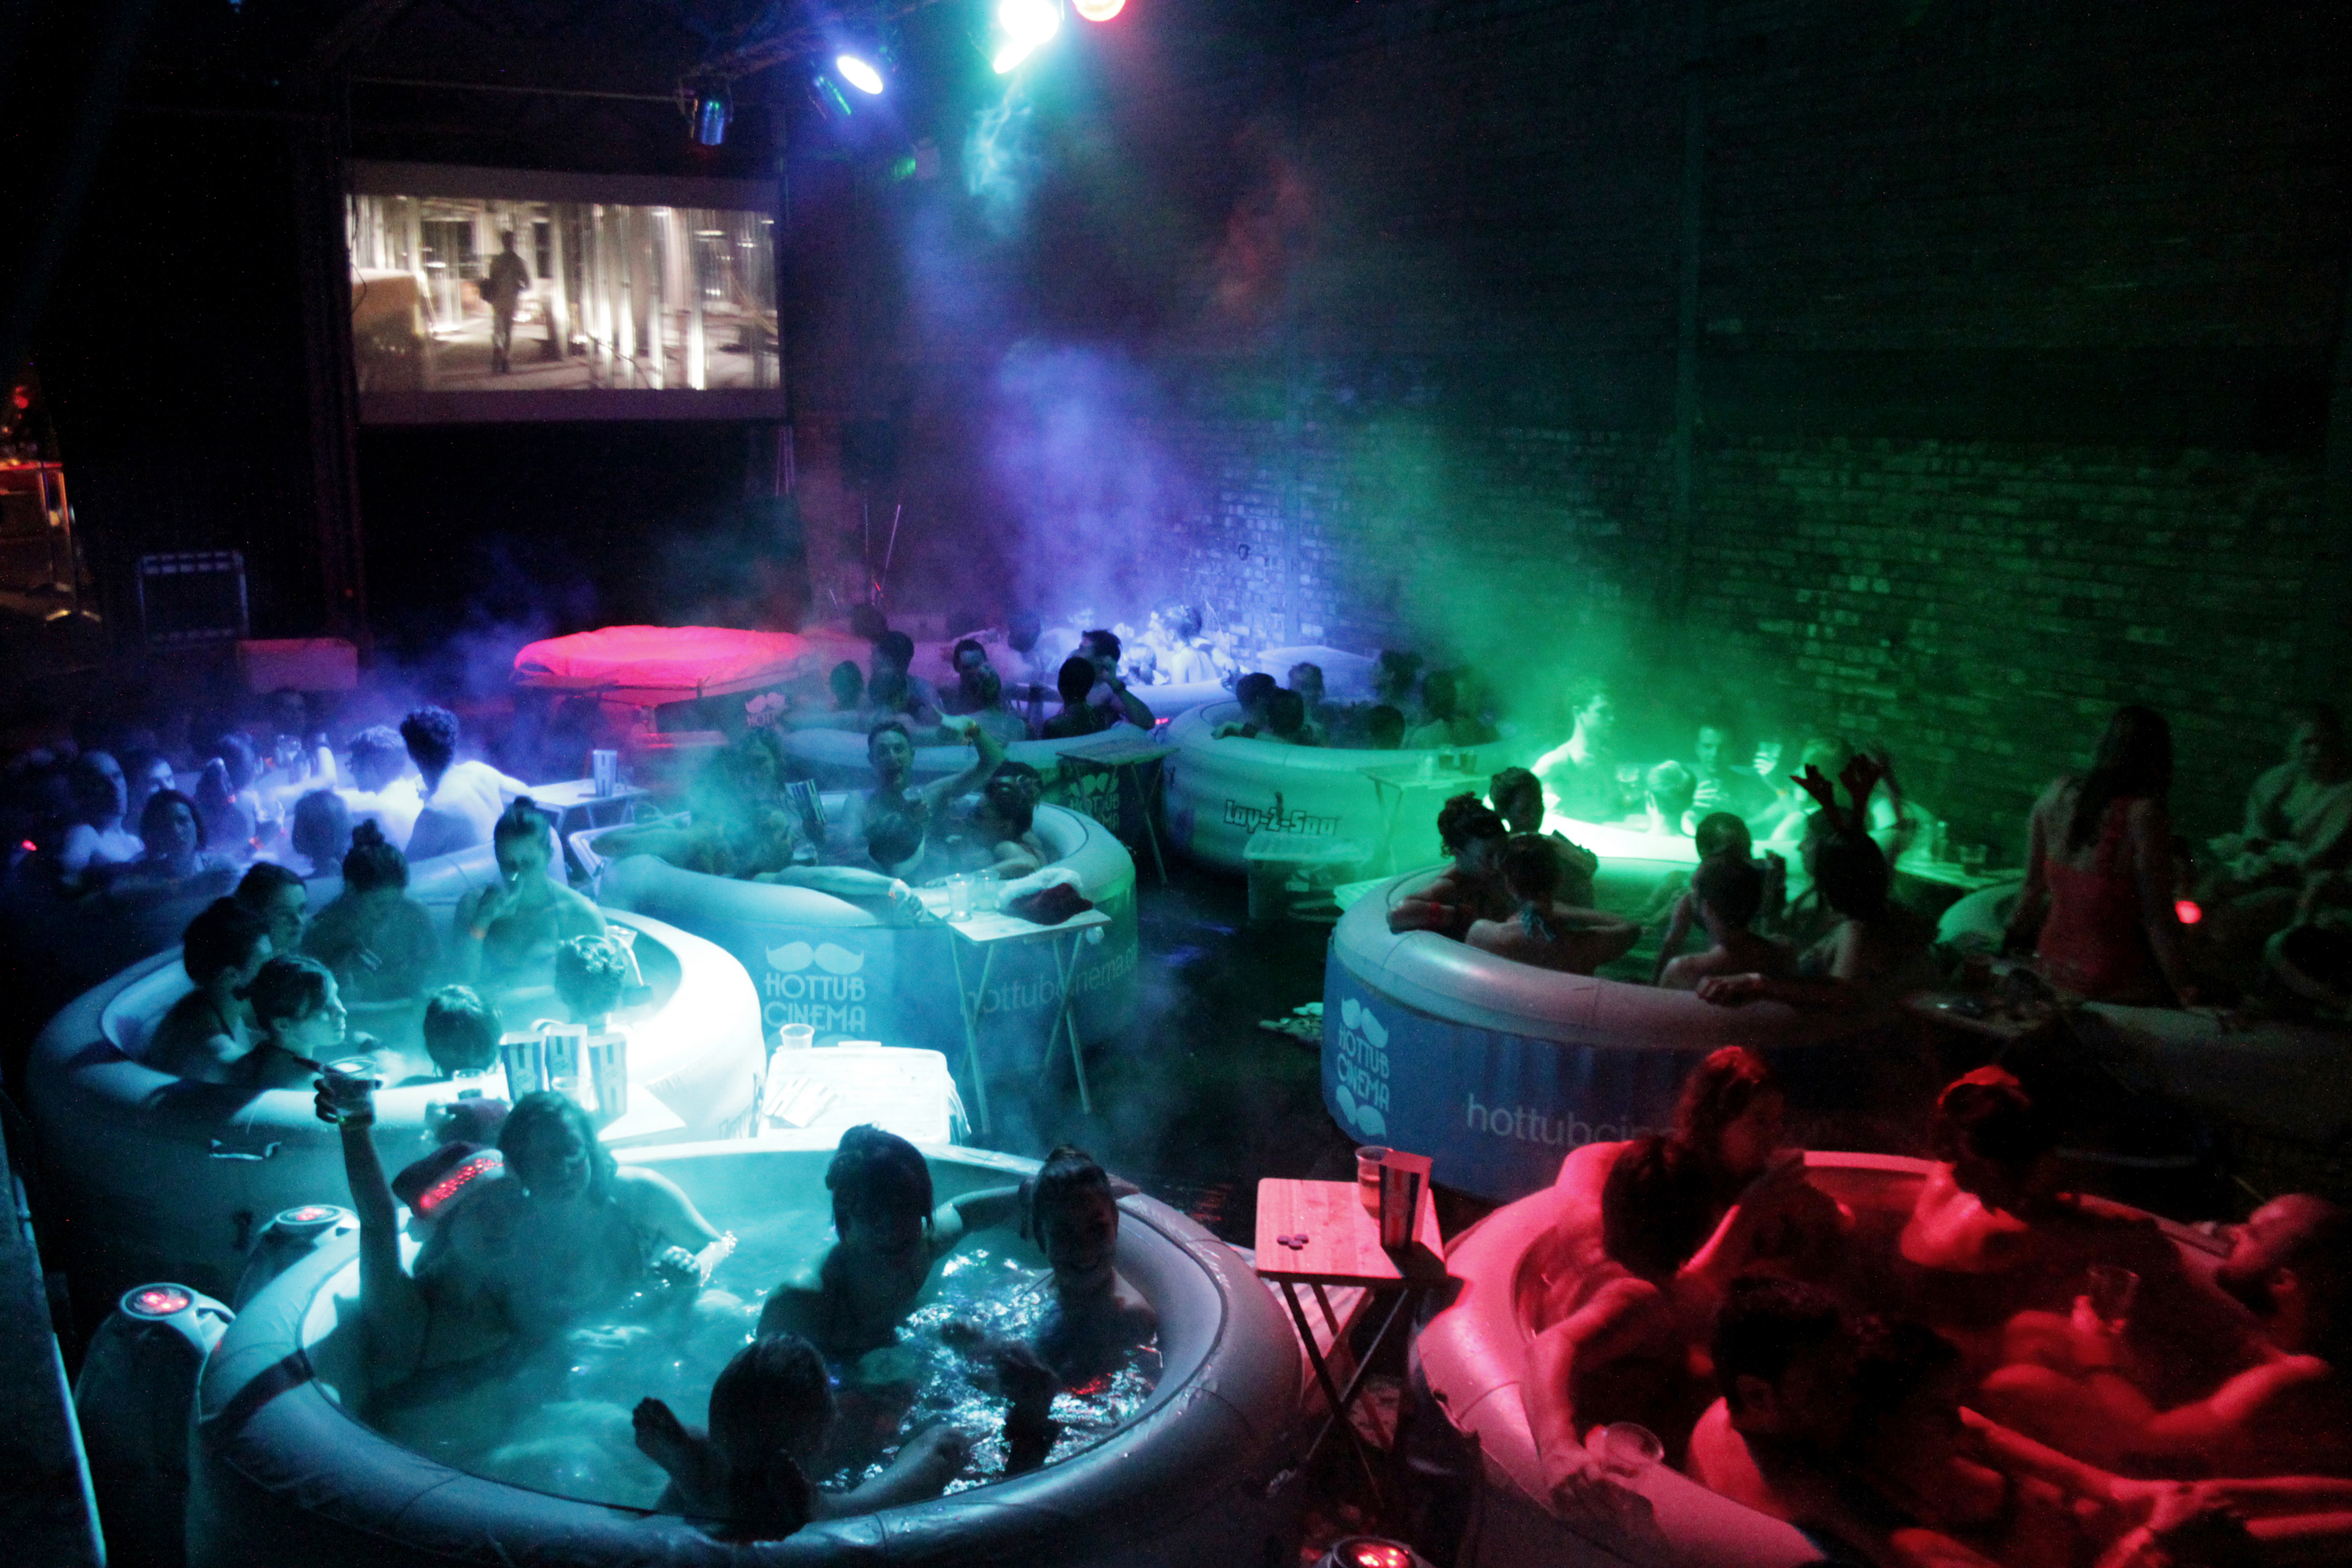 Hot Tub Cinema is coming to Manchester